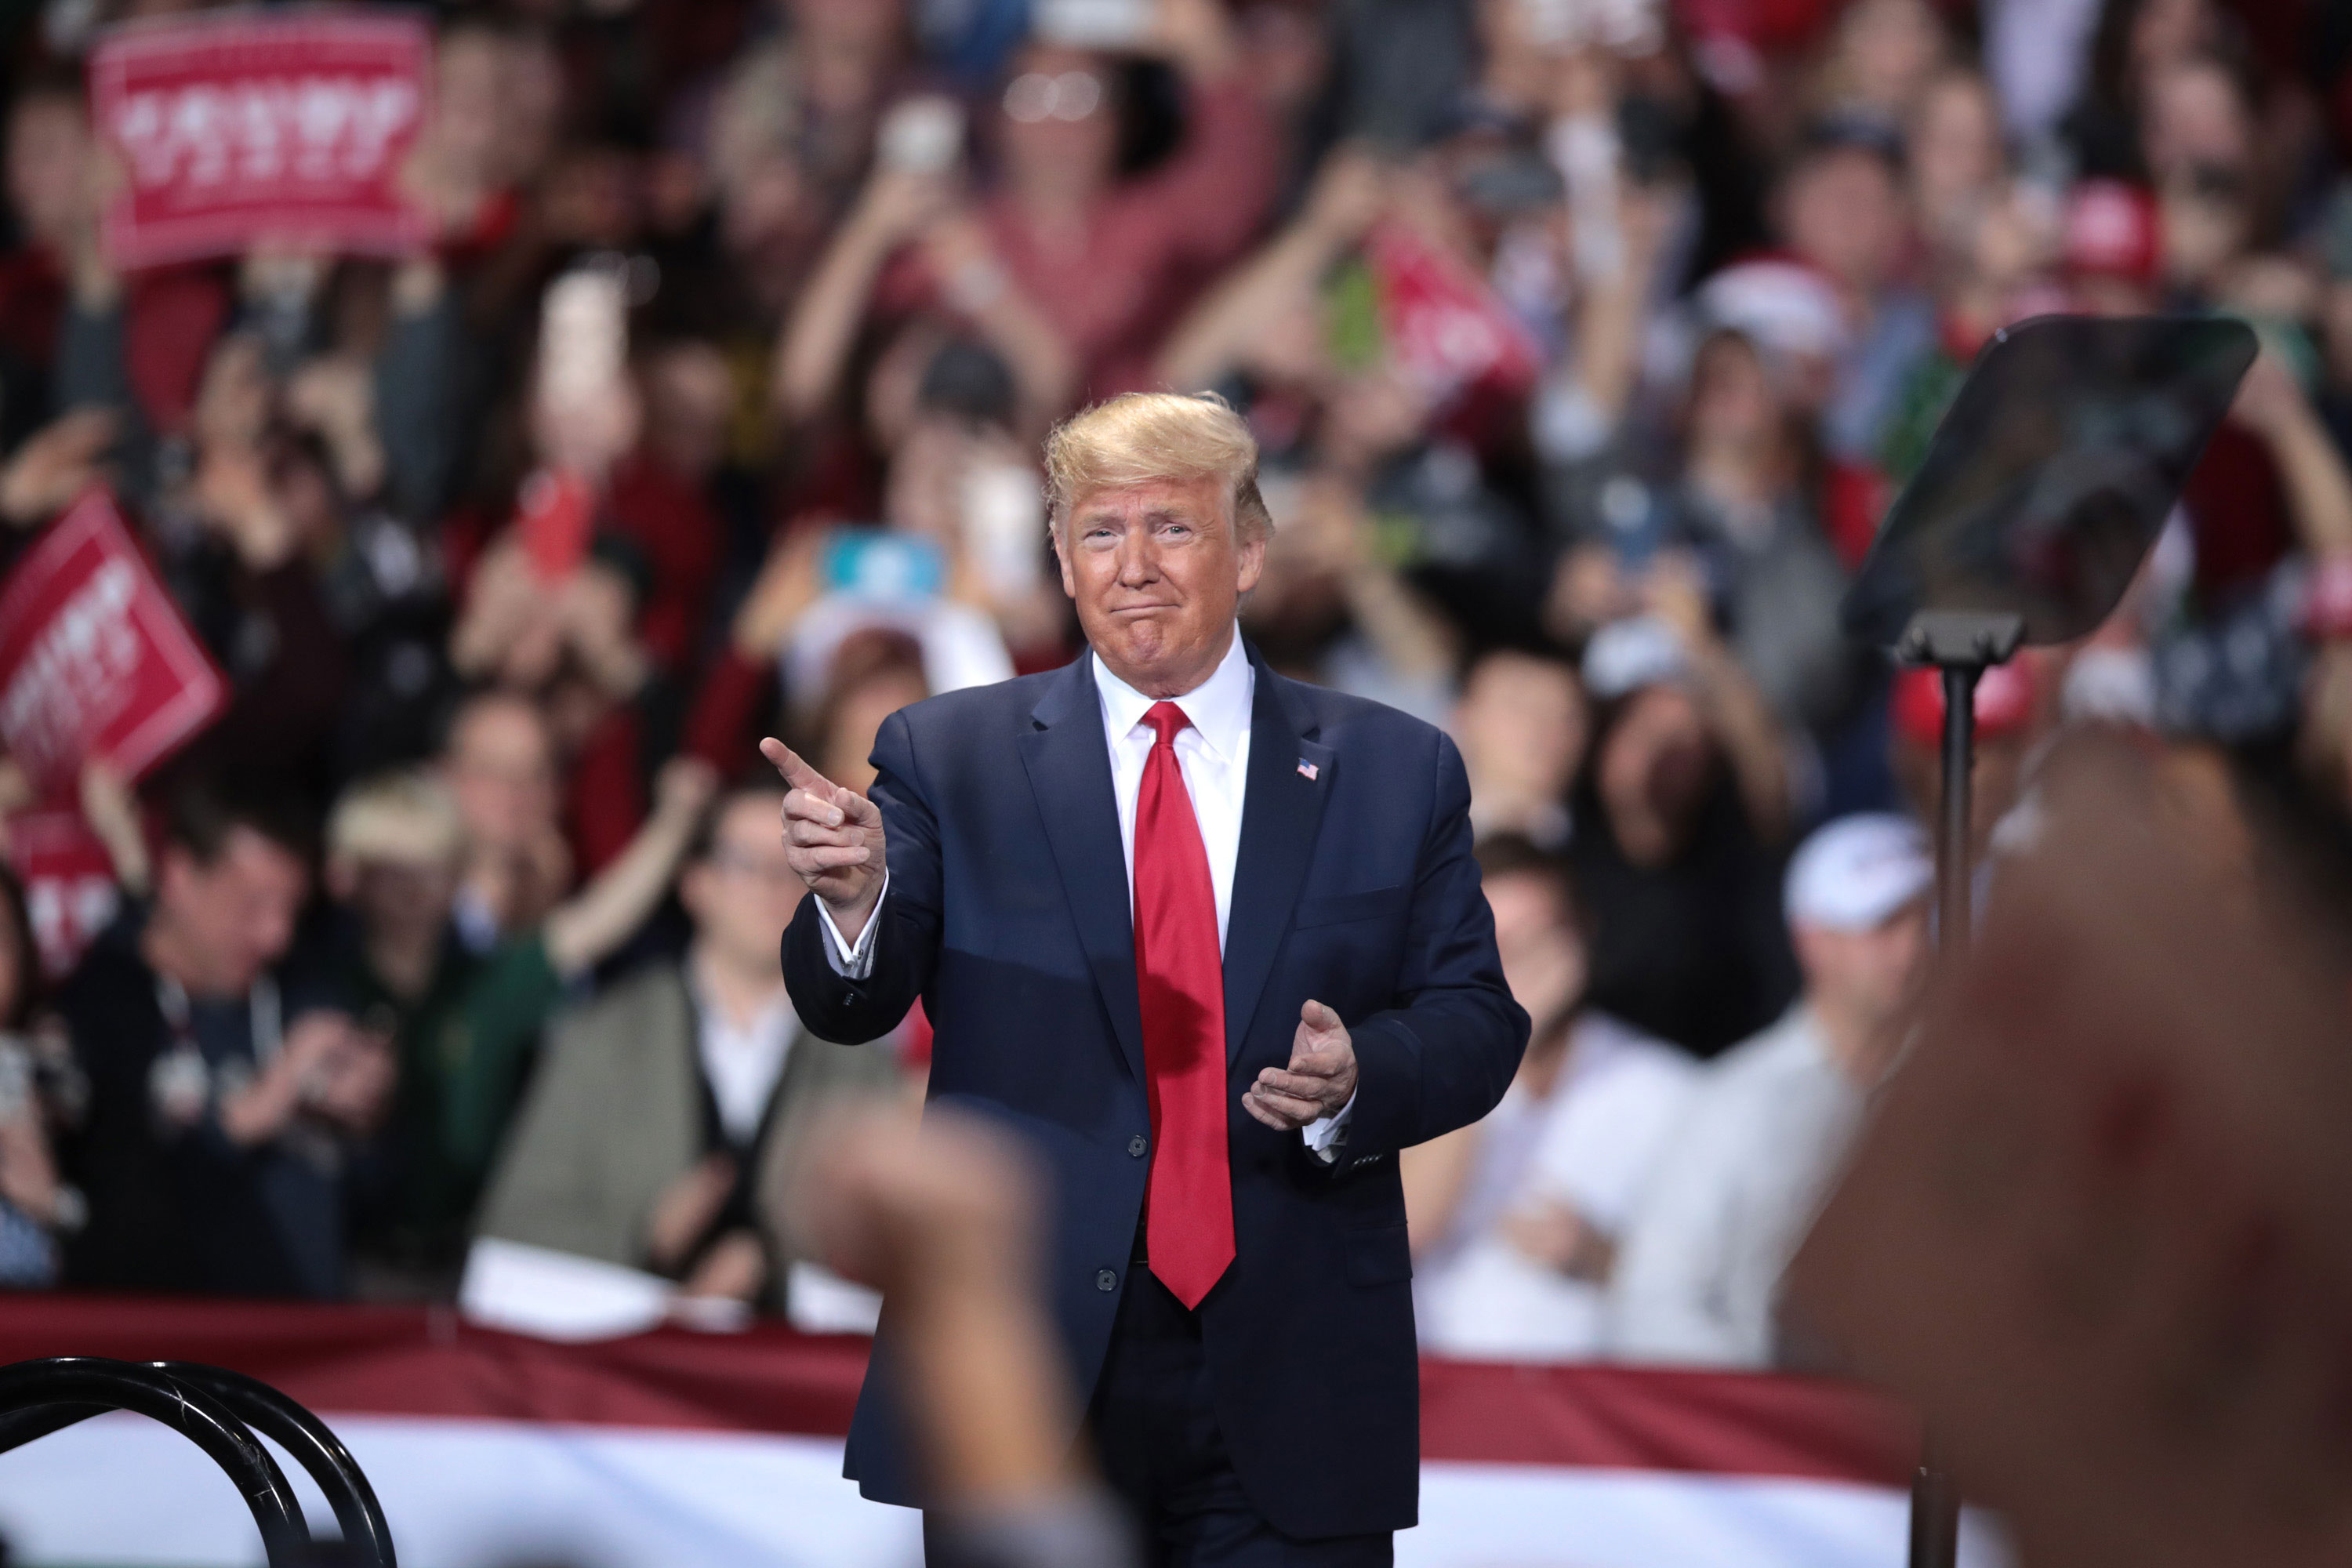 Trump campaign rallies stalk Democrats in 2020 preview